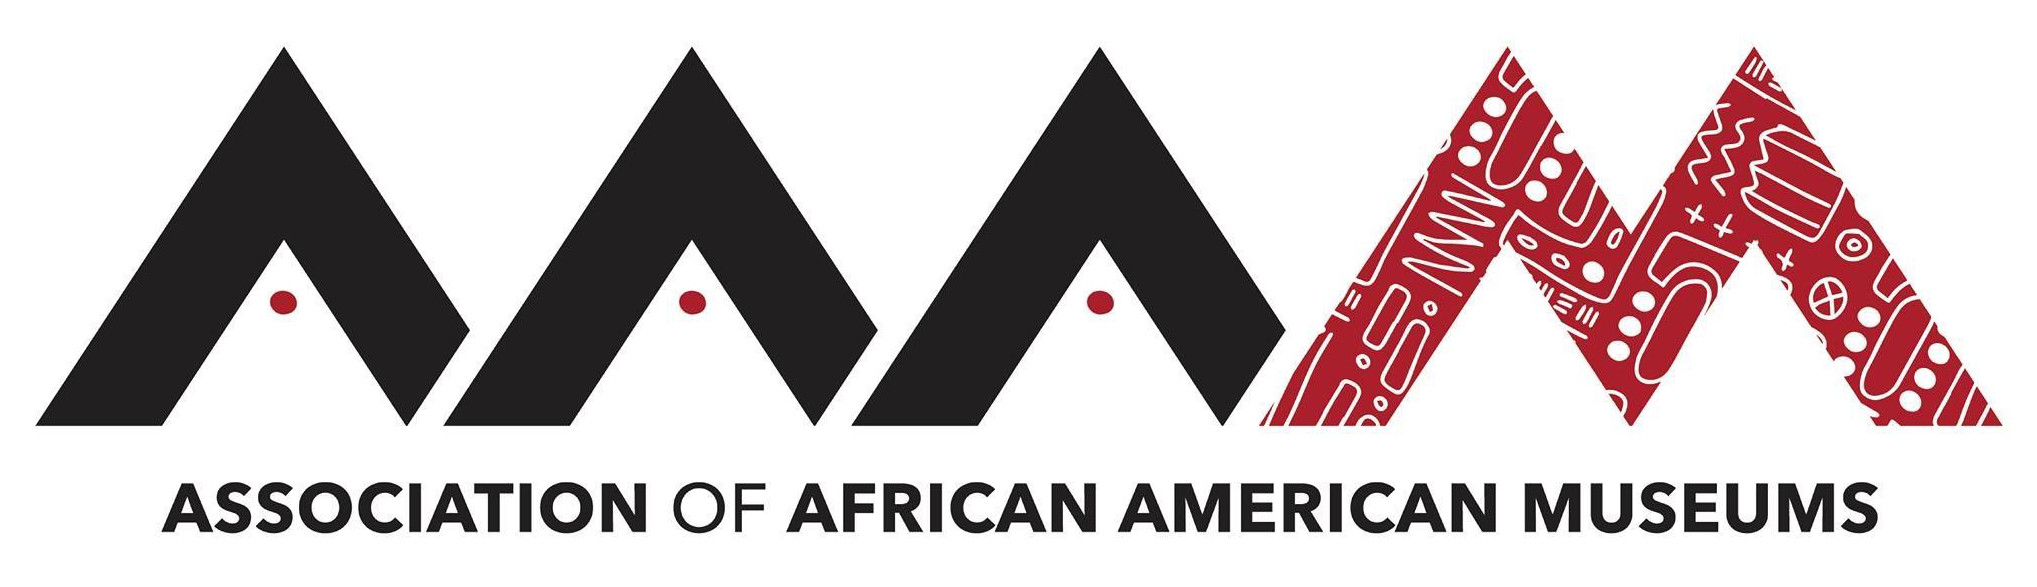 The Association of African American Museums